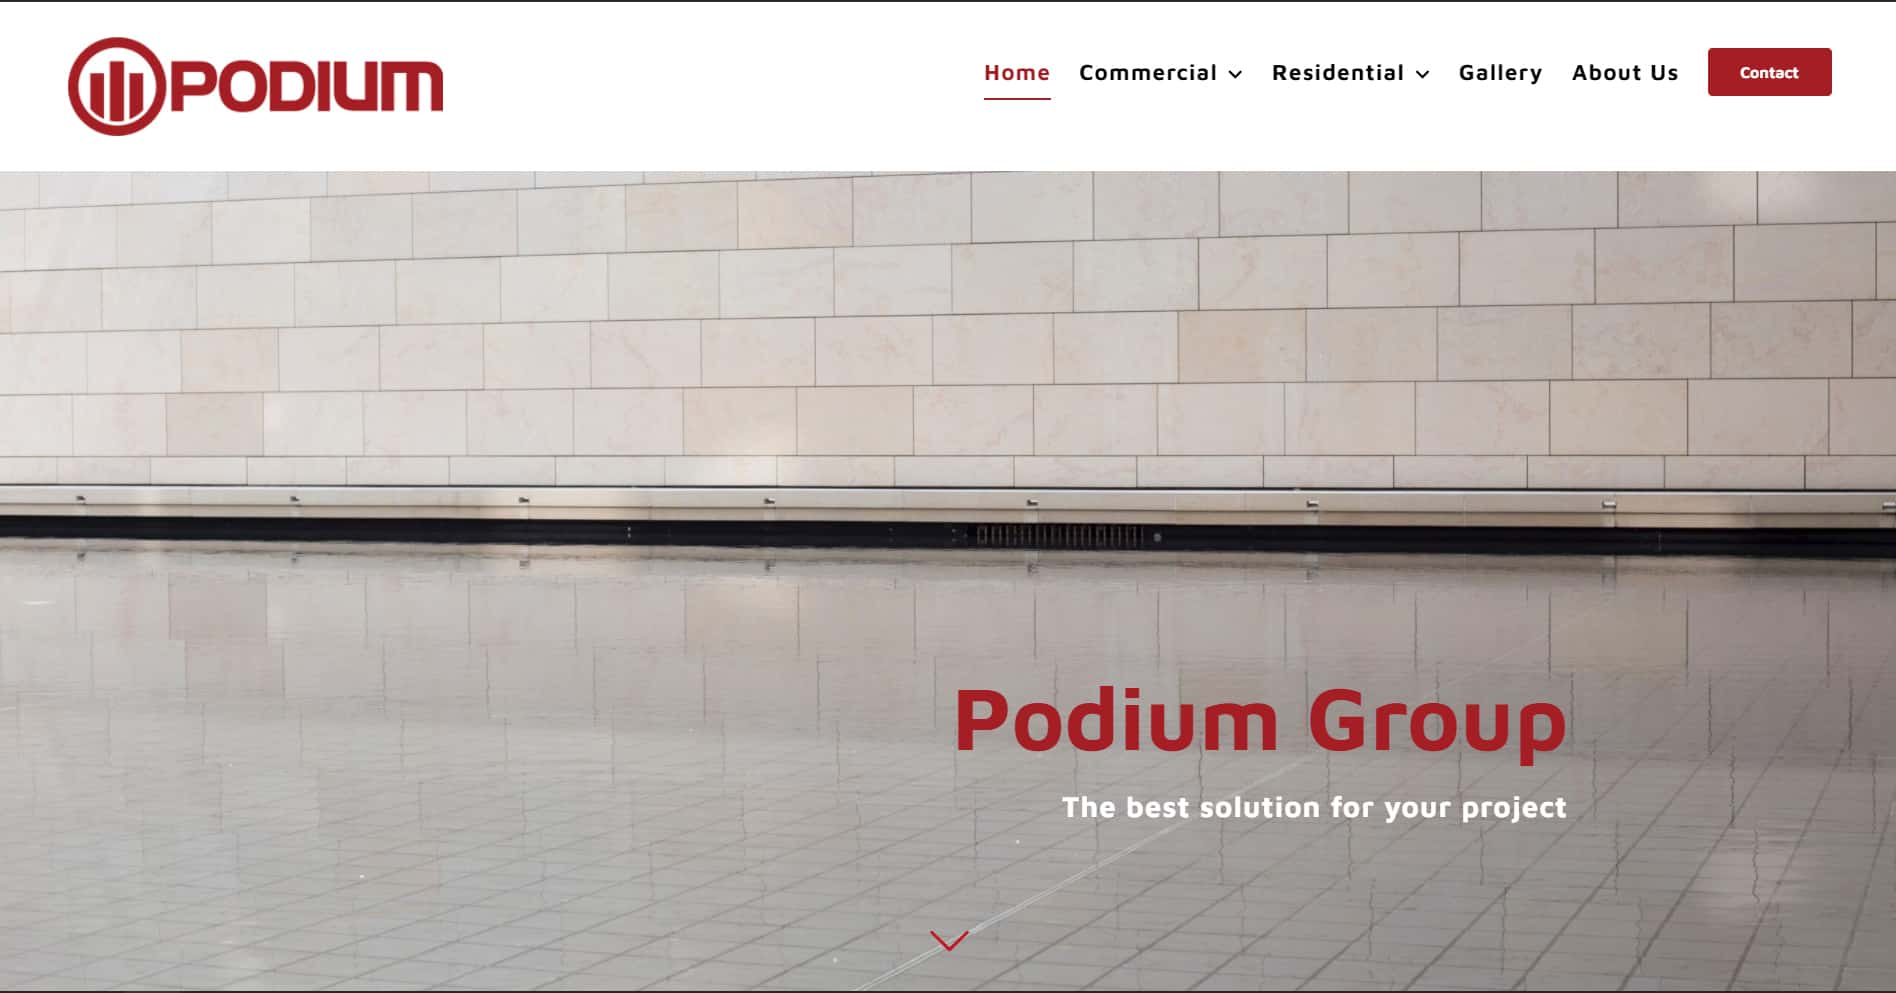 Screenshot of the home page of Podium Group's website